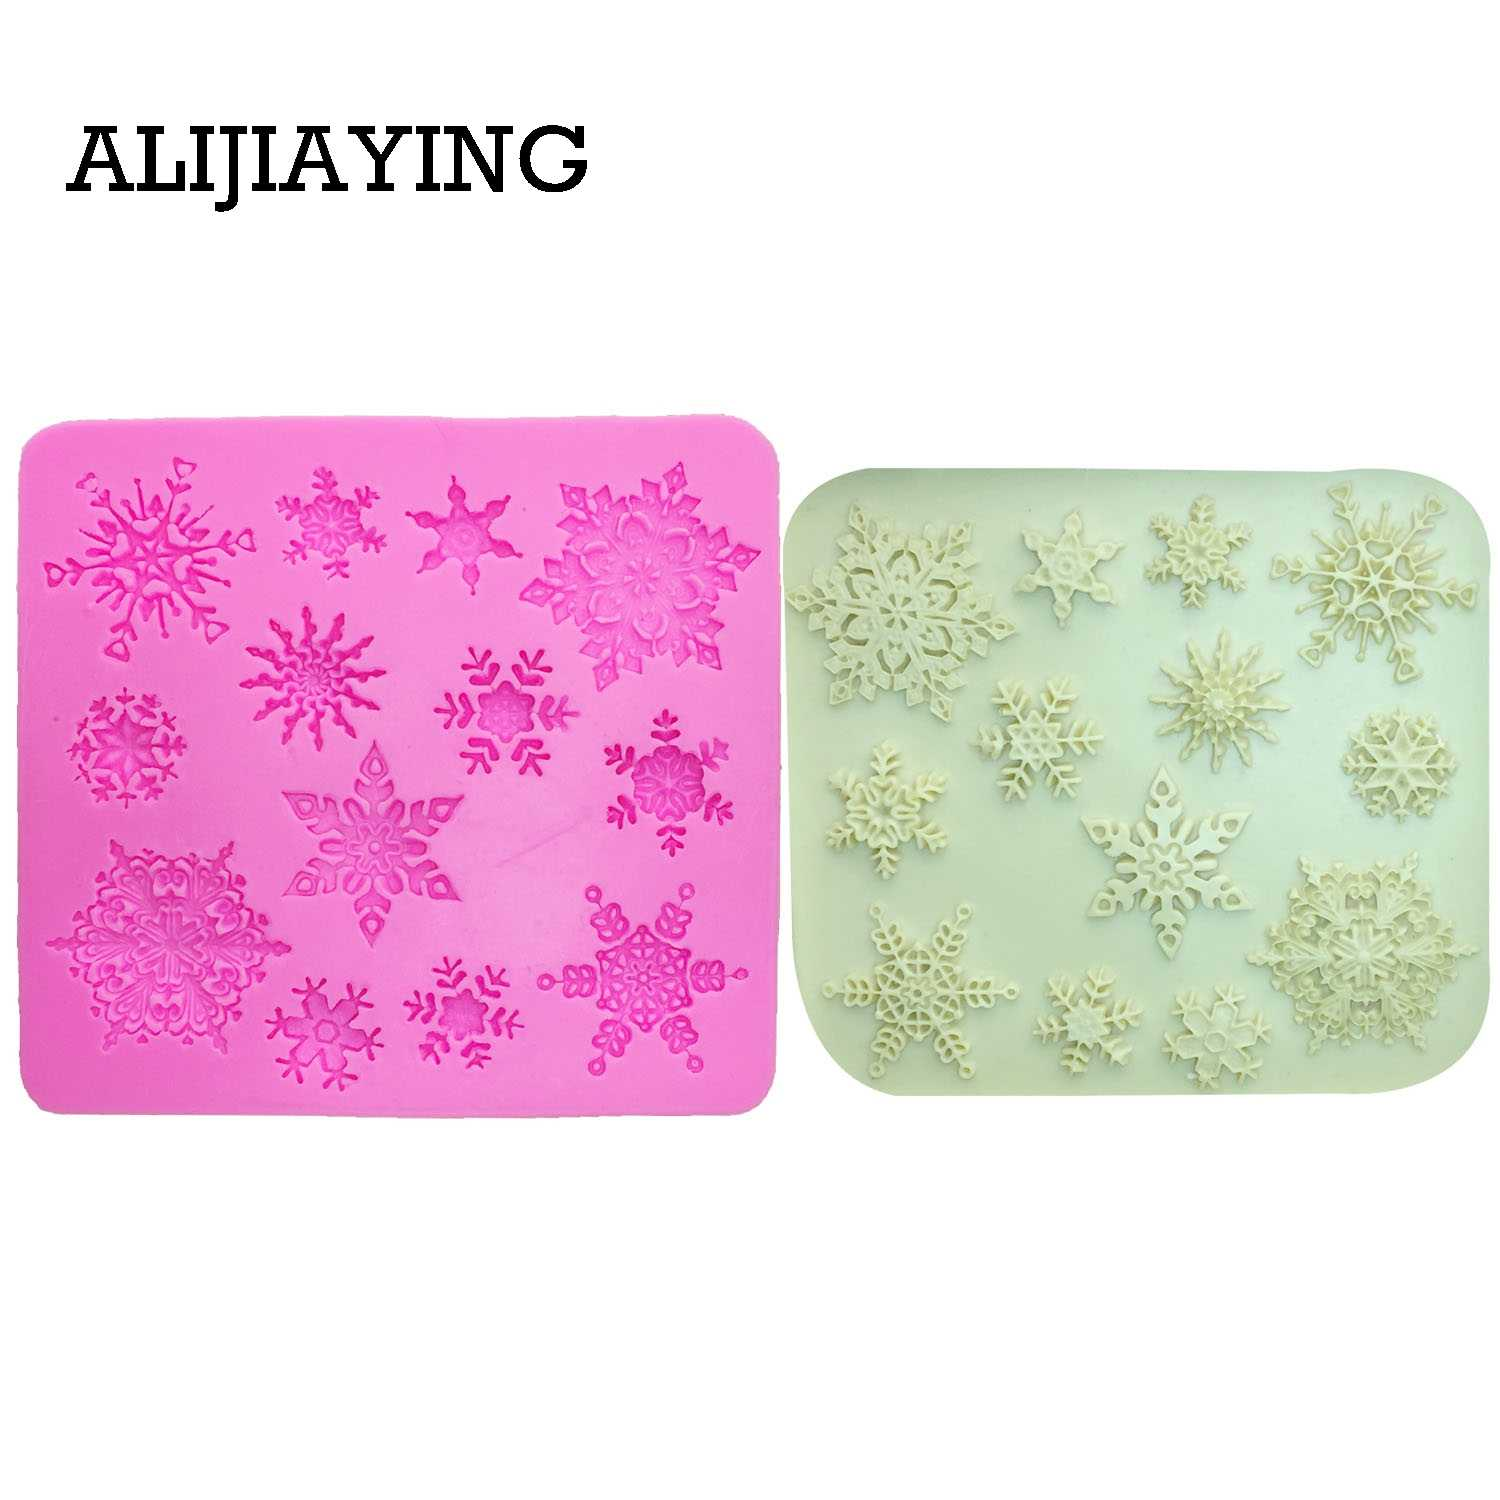 M0026 Christmas snowflakes Sugarcraft silicone mold cake decorating tools dessert decorators moulds Fimo Polymer Clay Resin